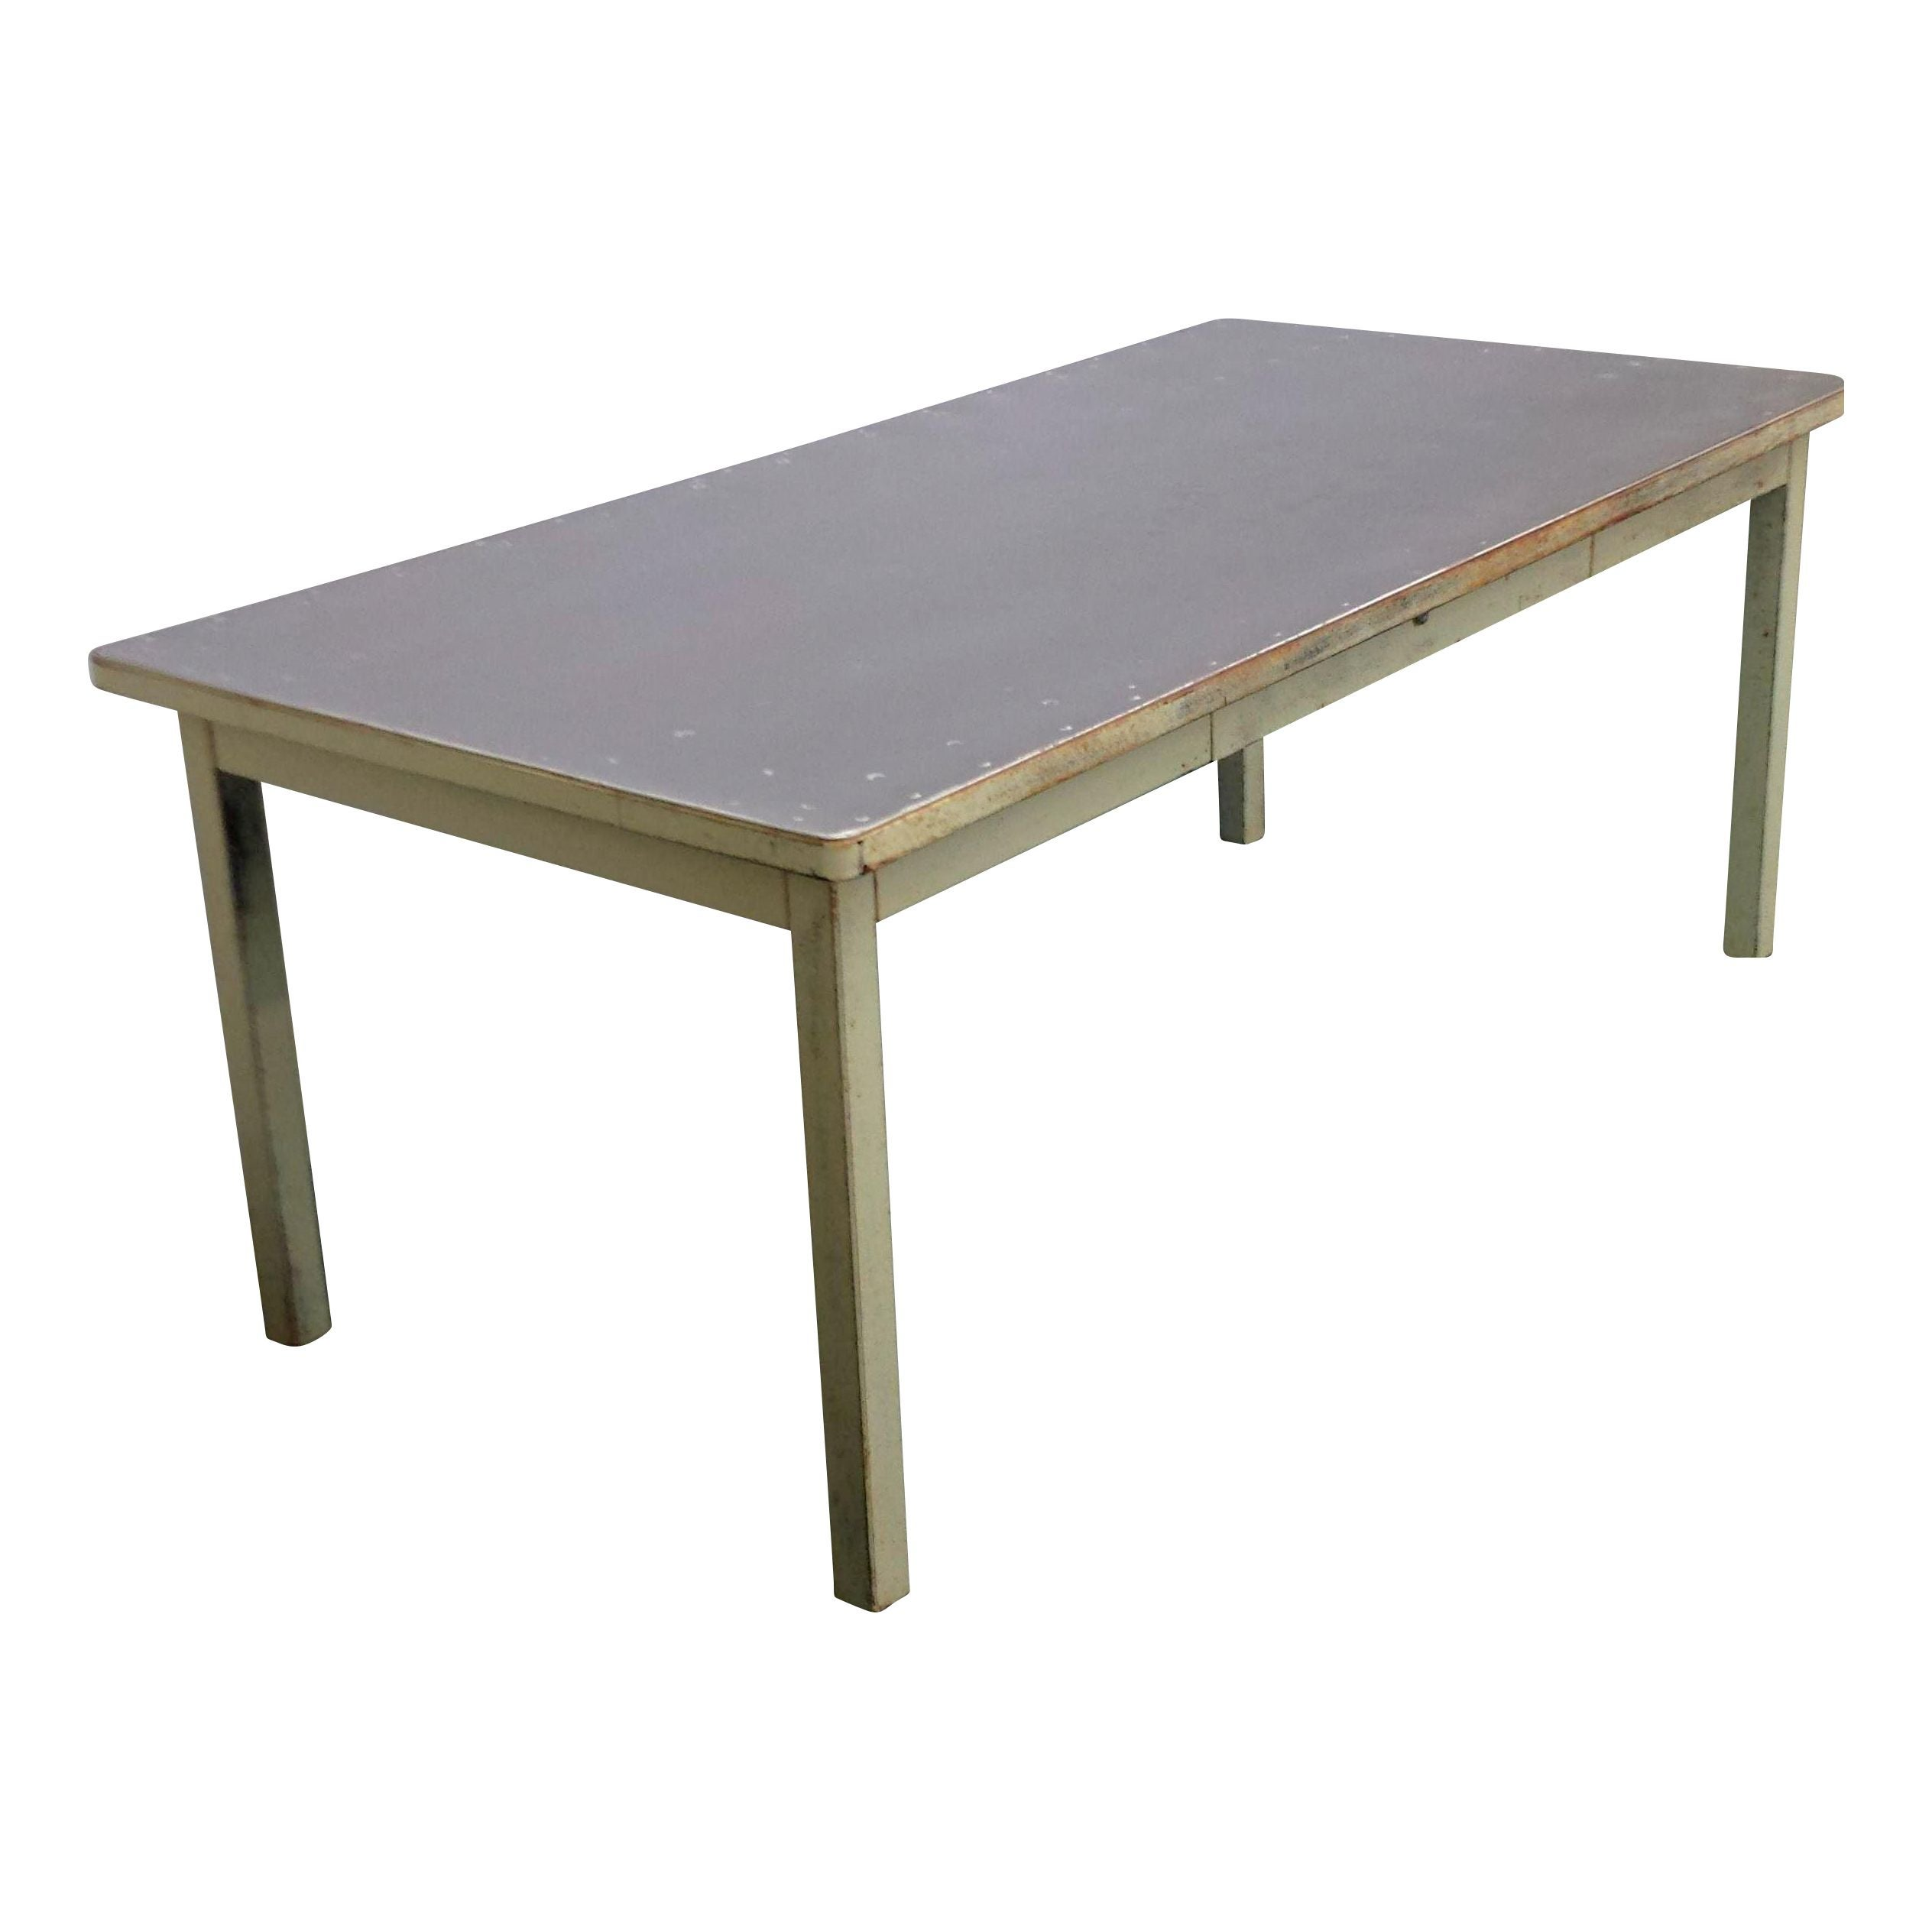 Mid Century Industrial Dining Table Desk Chairish : 6a2bc58d c177 40c6 bb29 ce8af006517faspectfitampwidth640ampheight640 from www.chairish.com size 640 x 640 jpeg 17kB